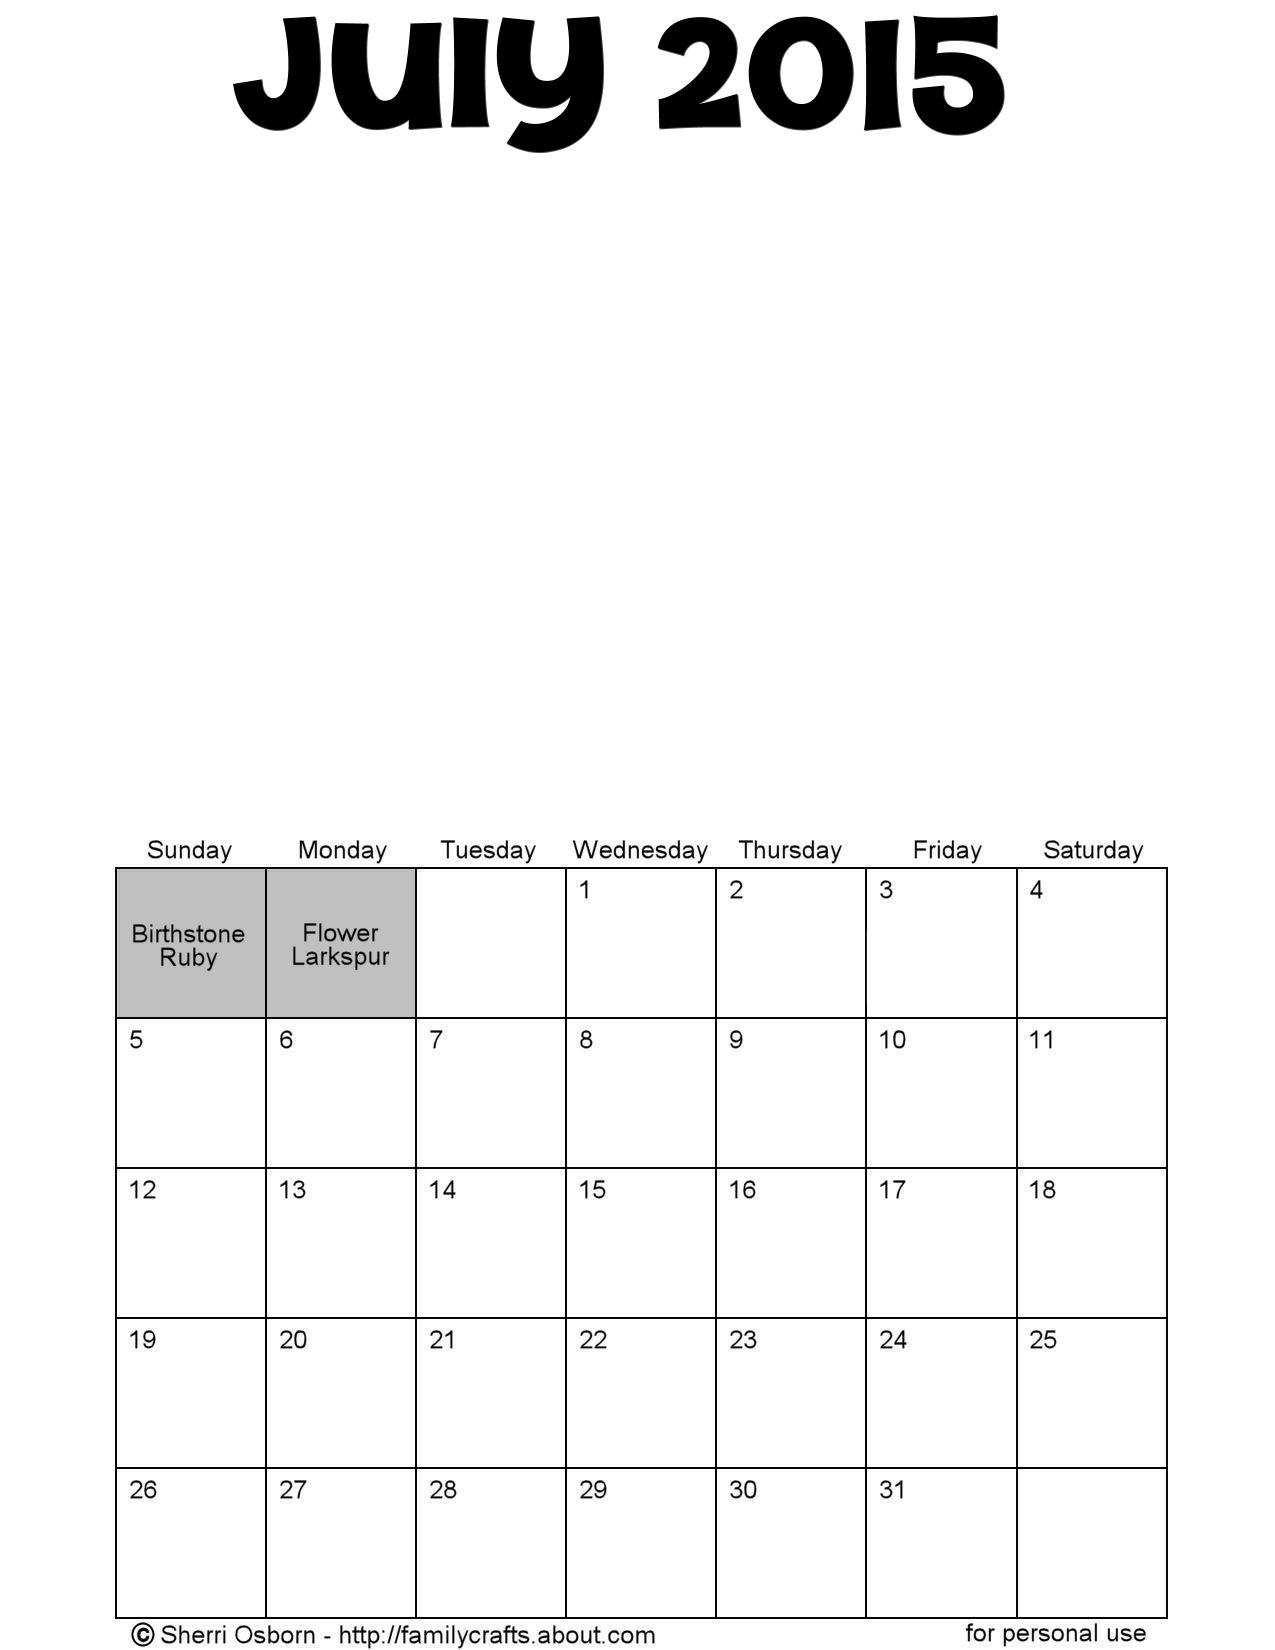 Printable blank july 2015 calendar Top Result 56 Inspirational Calendar Template 2015 with Holidays Pic 2017 Hgd6